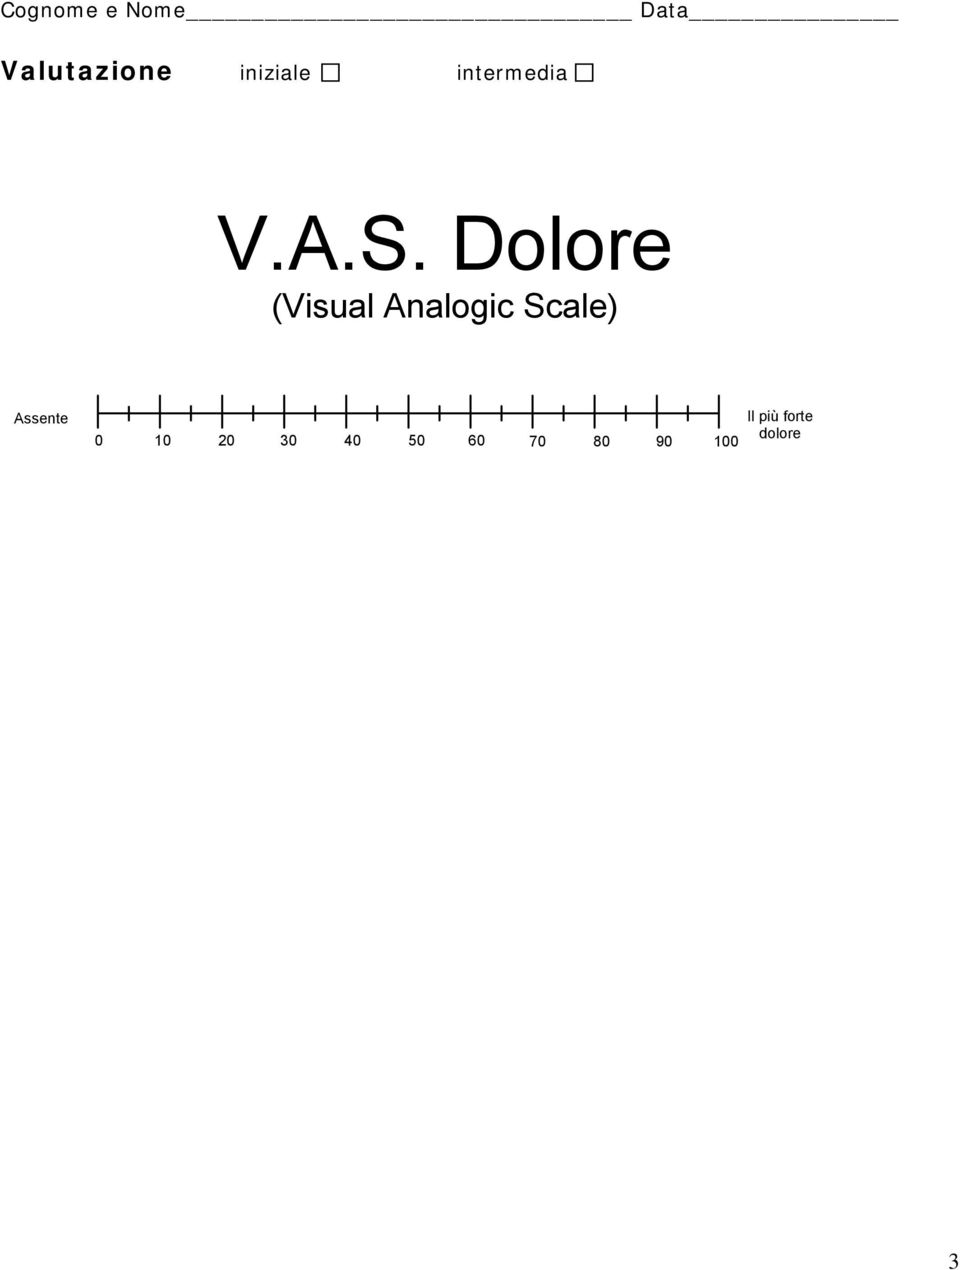 Dolore (Visual Analogic Scale)